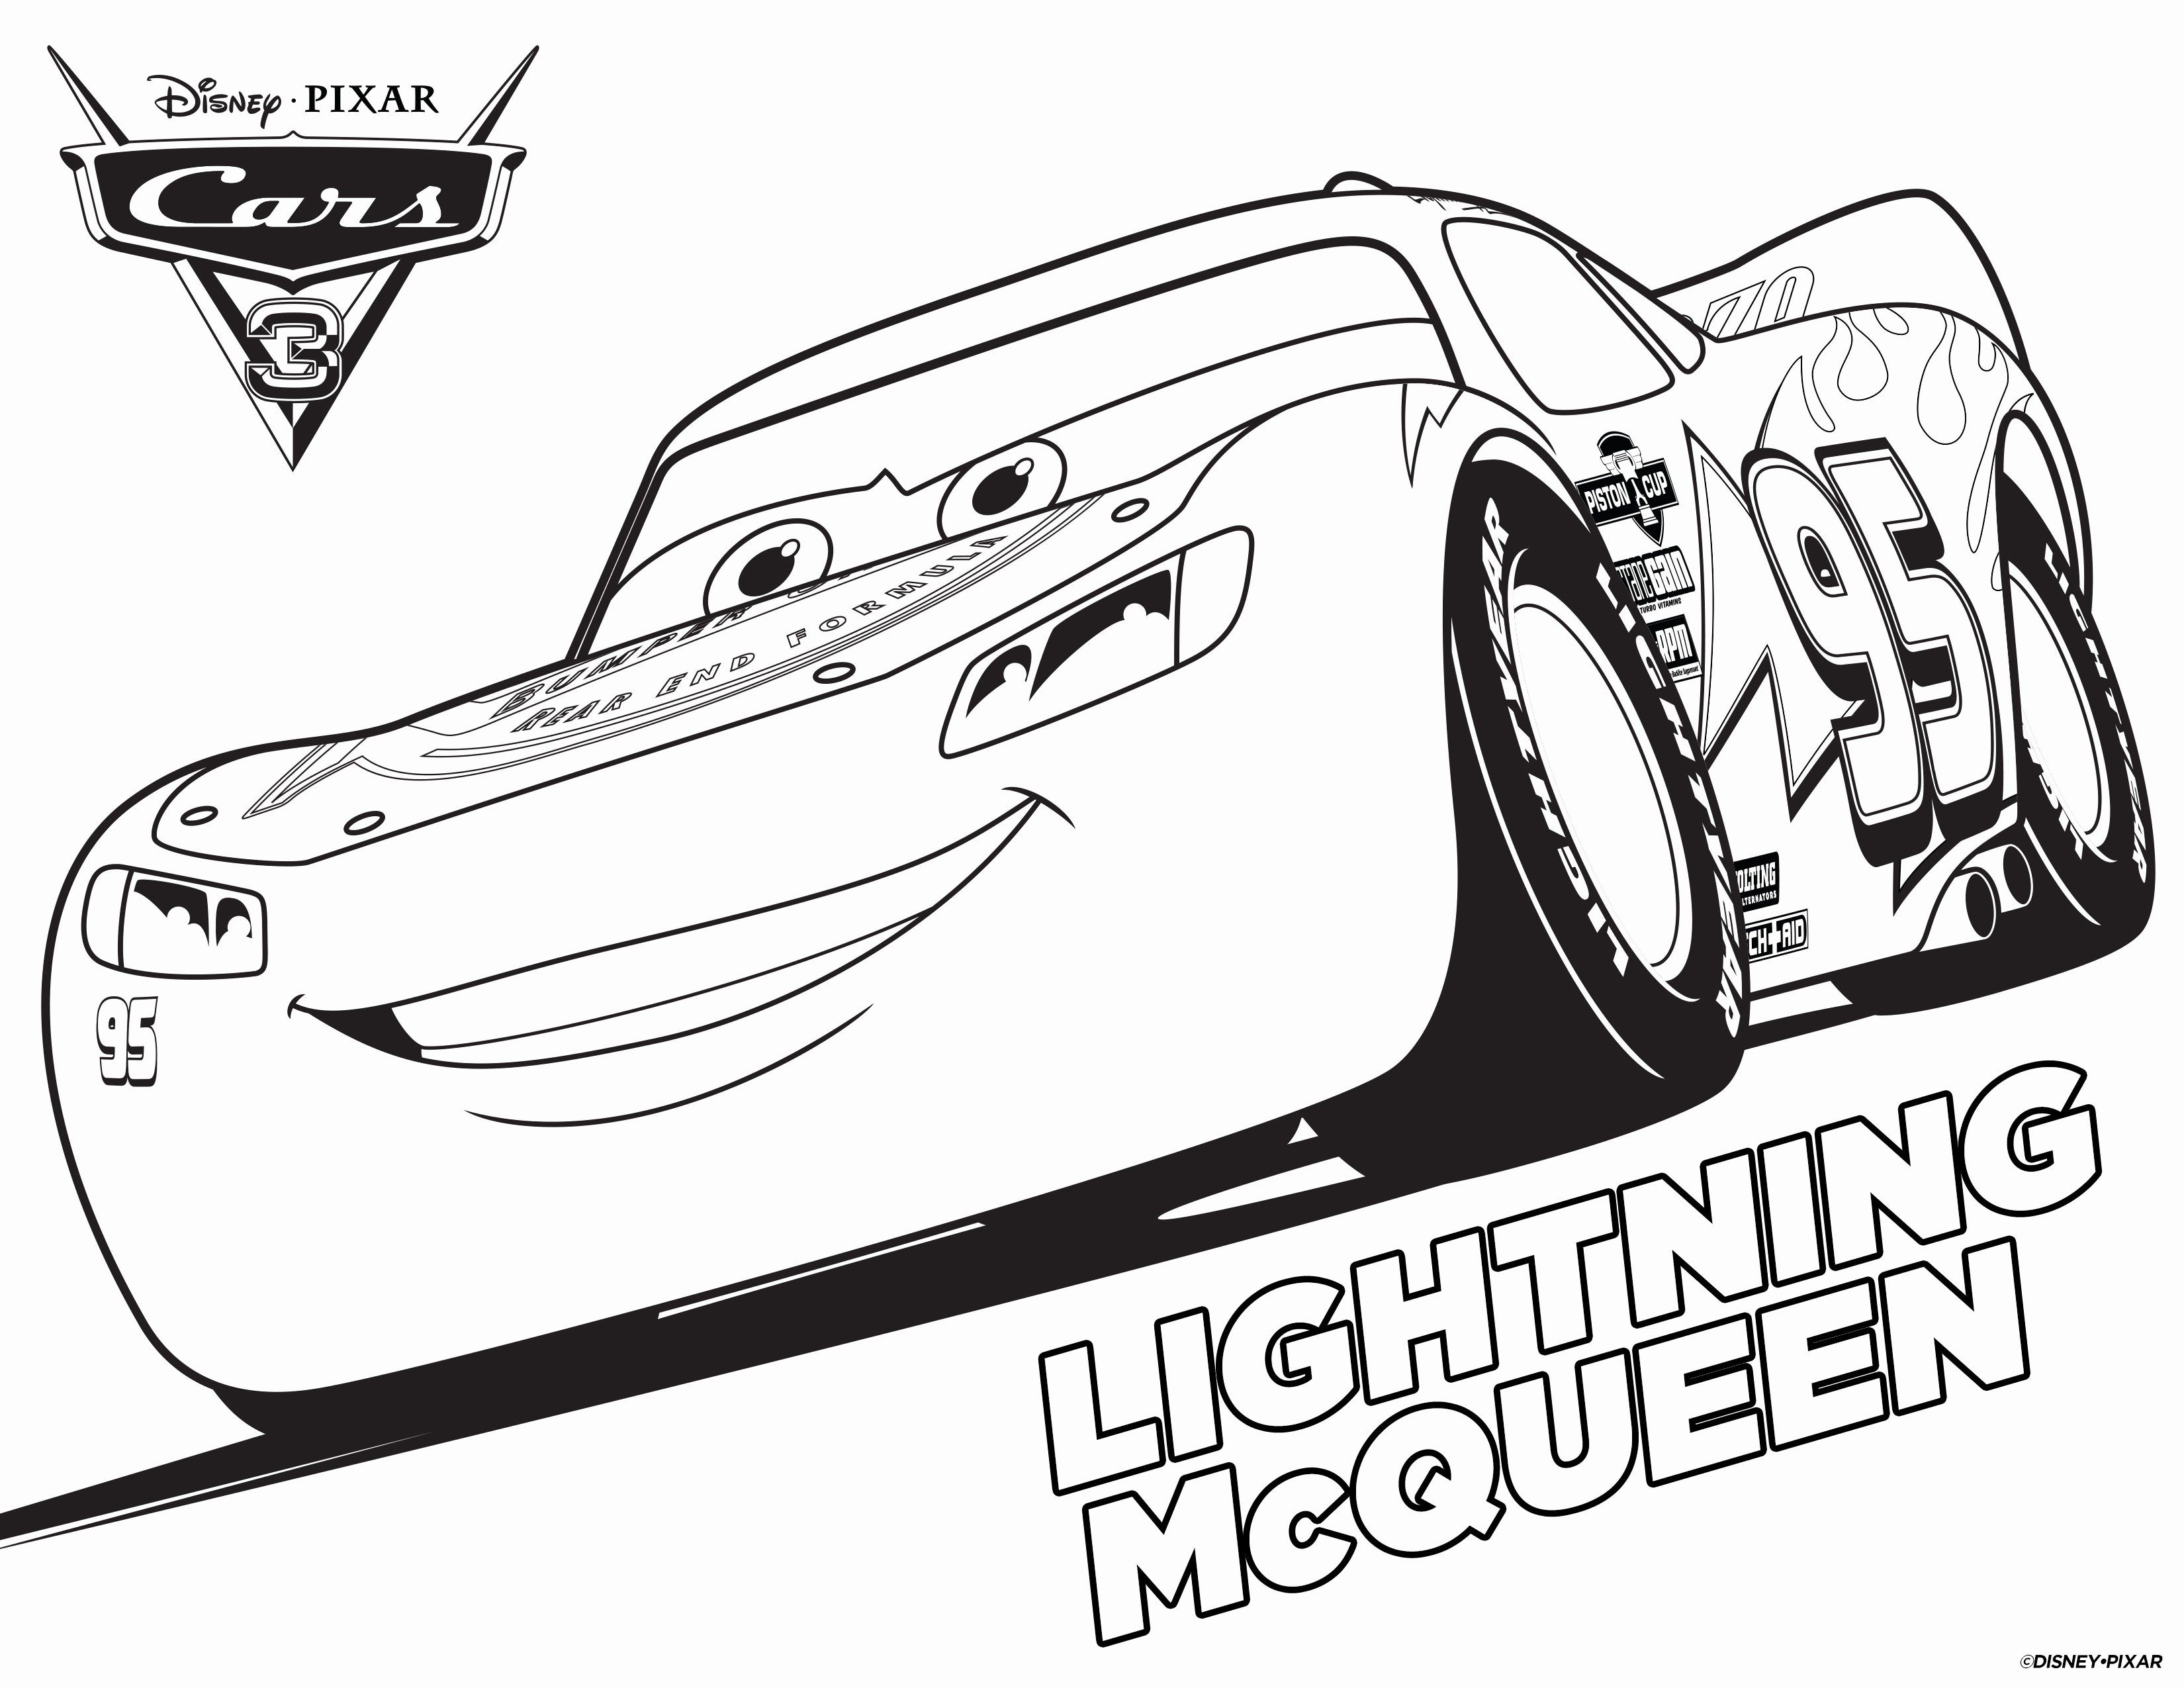 Lightning Mcqueen Coloring Pages Printable Fresh Cars 3 Coloring Pages Free Printab In 2020 Race Car Coloring Pages Disney Coloring Pages Free Printable Coloring Pages